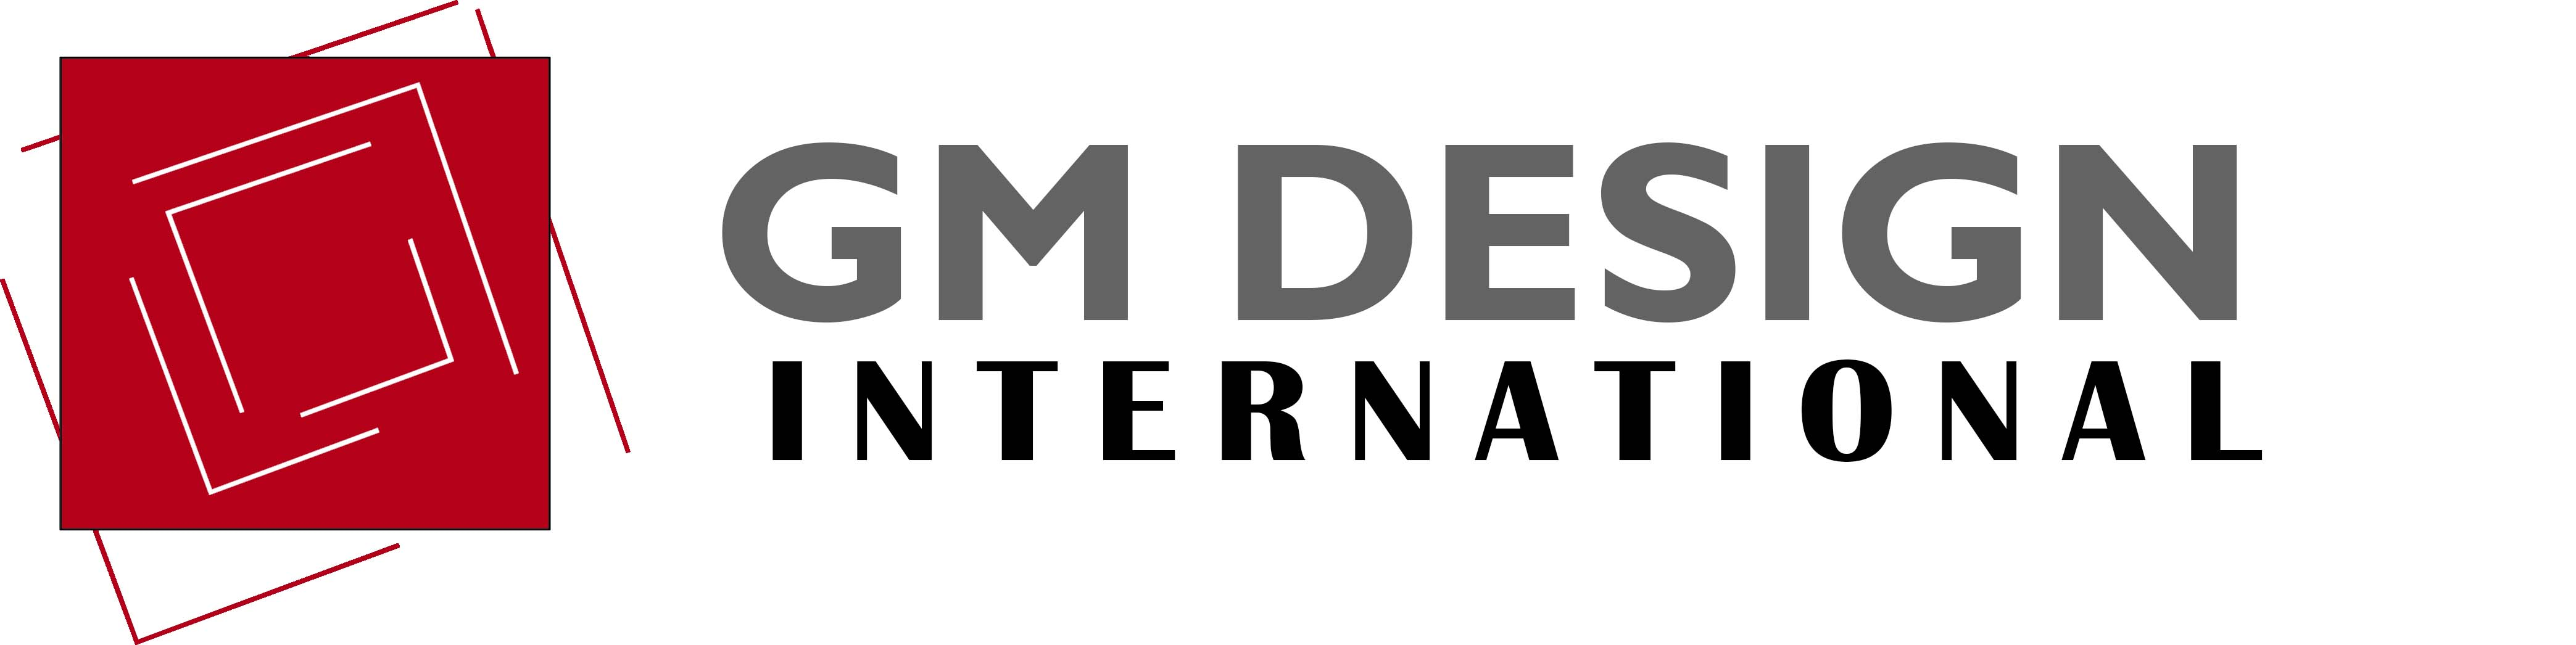 GM DESIGN INTERNATIONAL